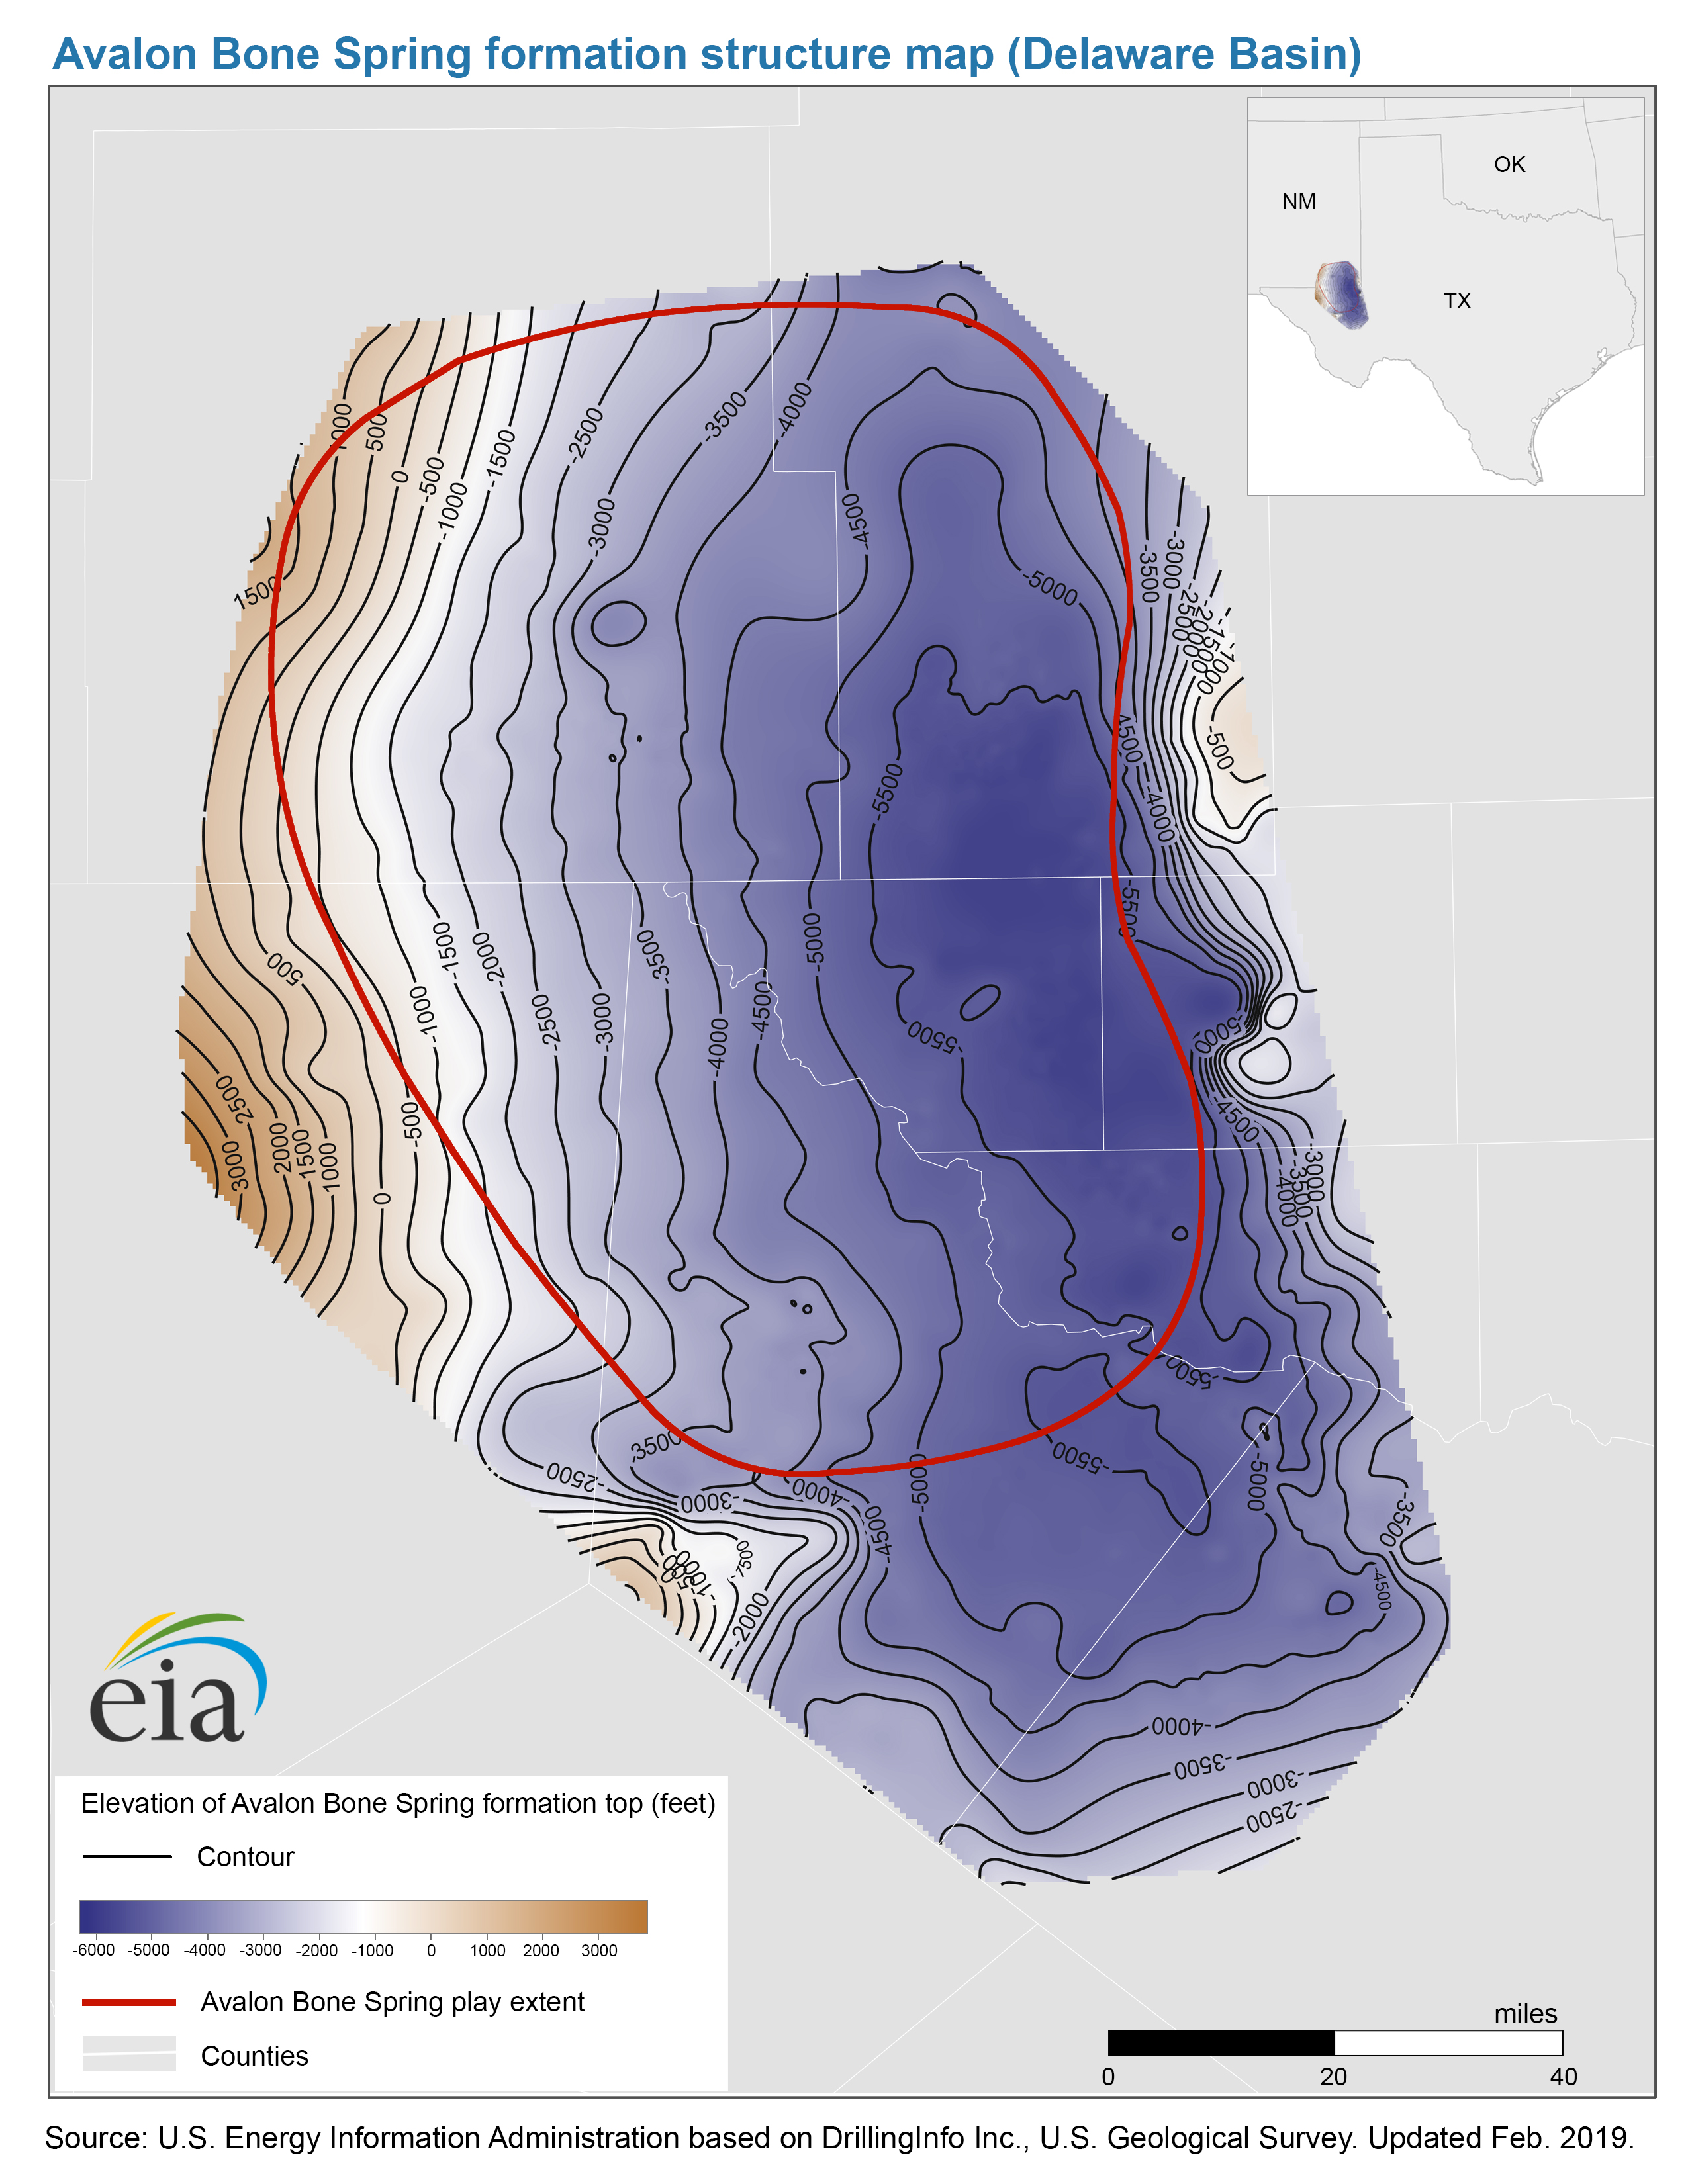 Maps: Oil and Gas Exploration, Resources, and Production